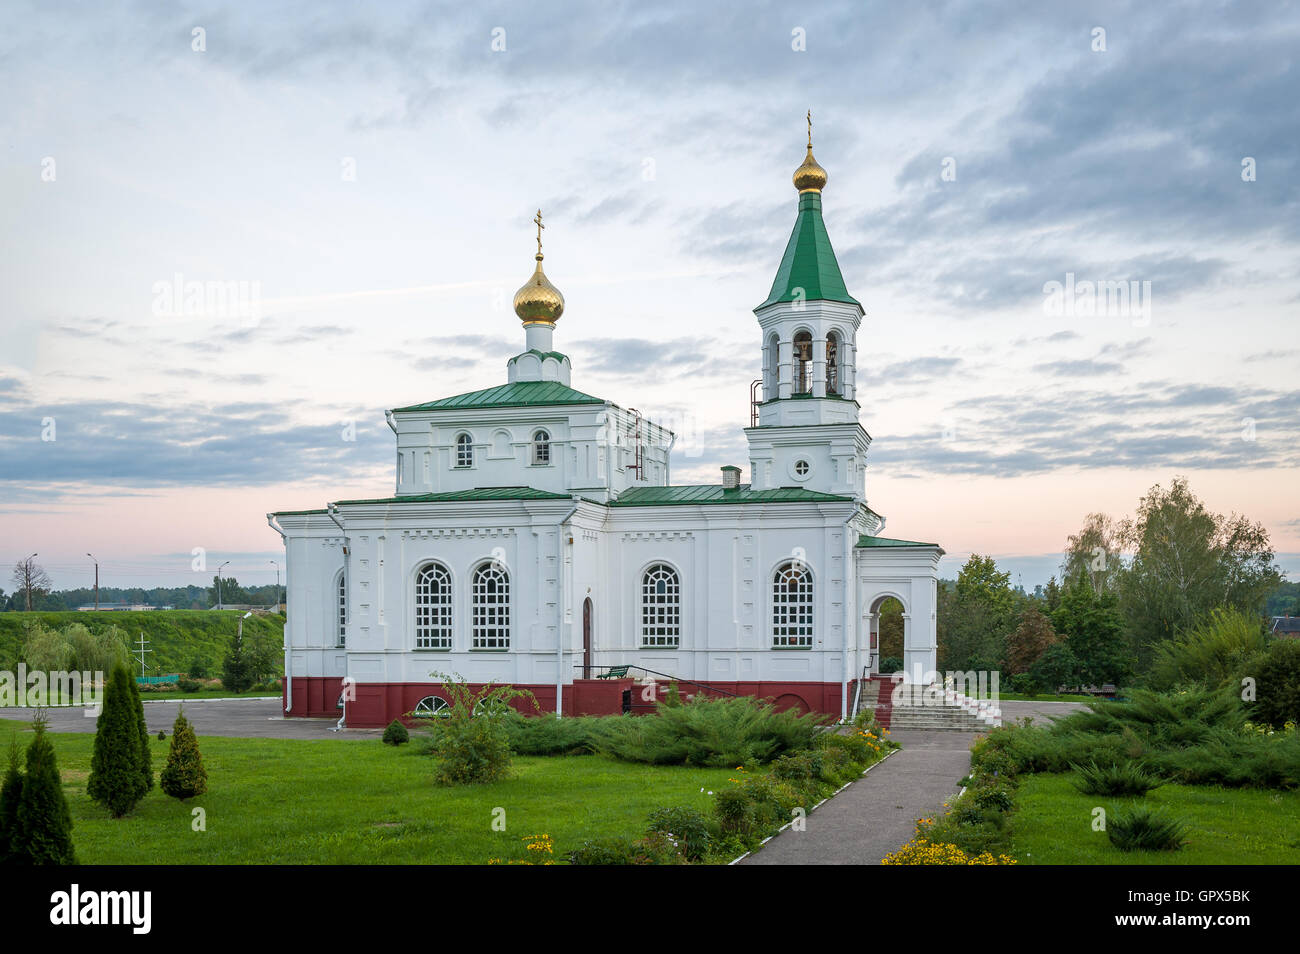 Pokrovskaya old church in Polotsk, Belarus - Stock Image